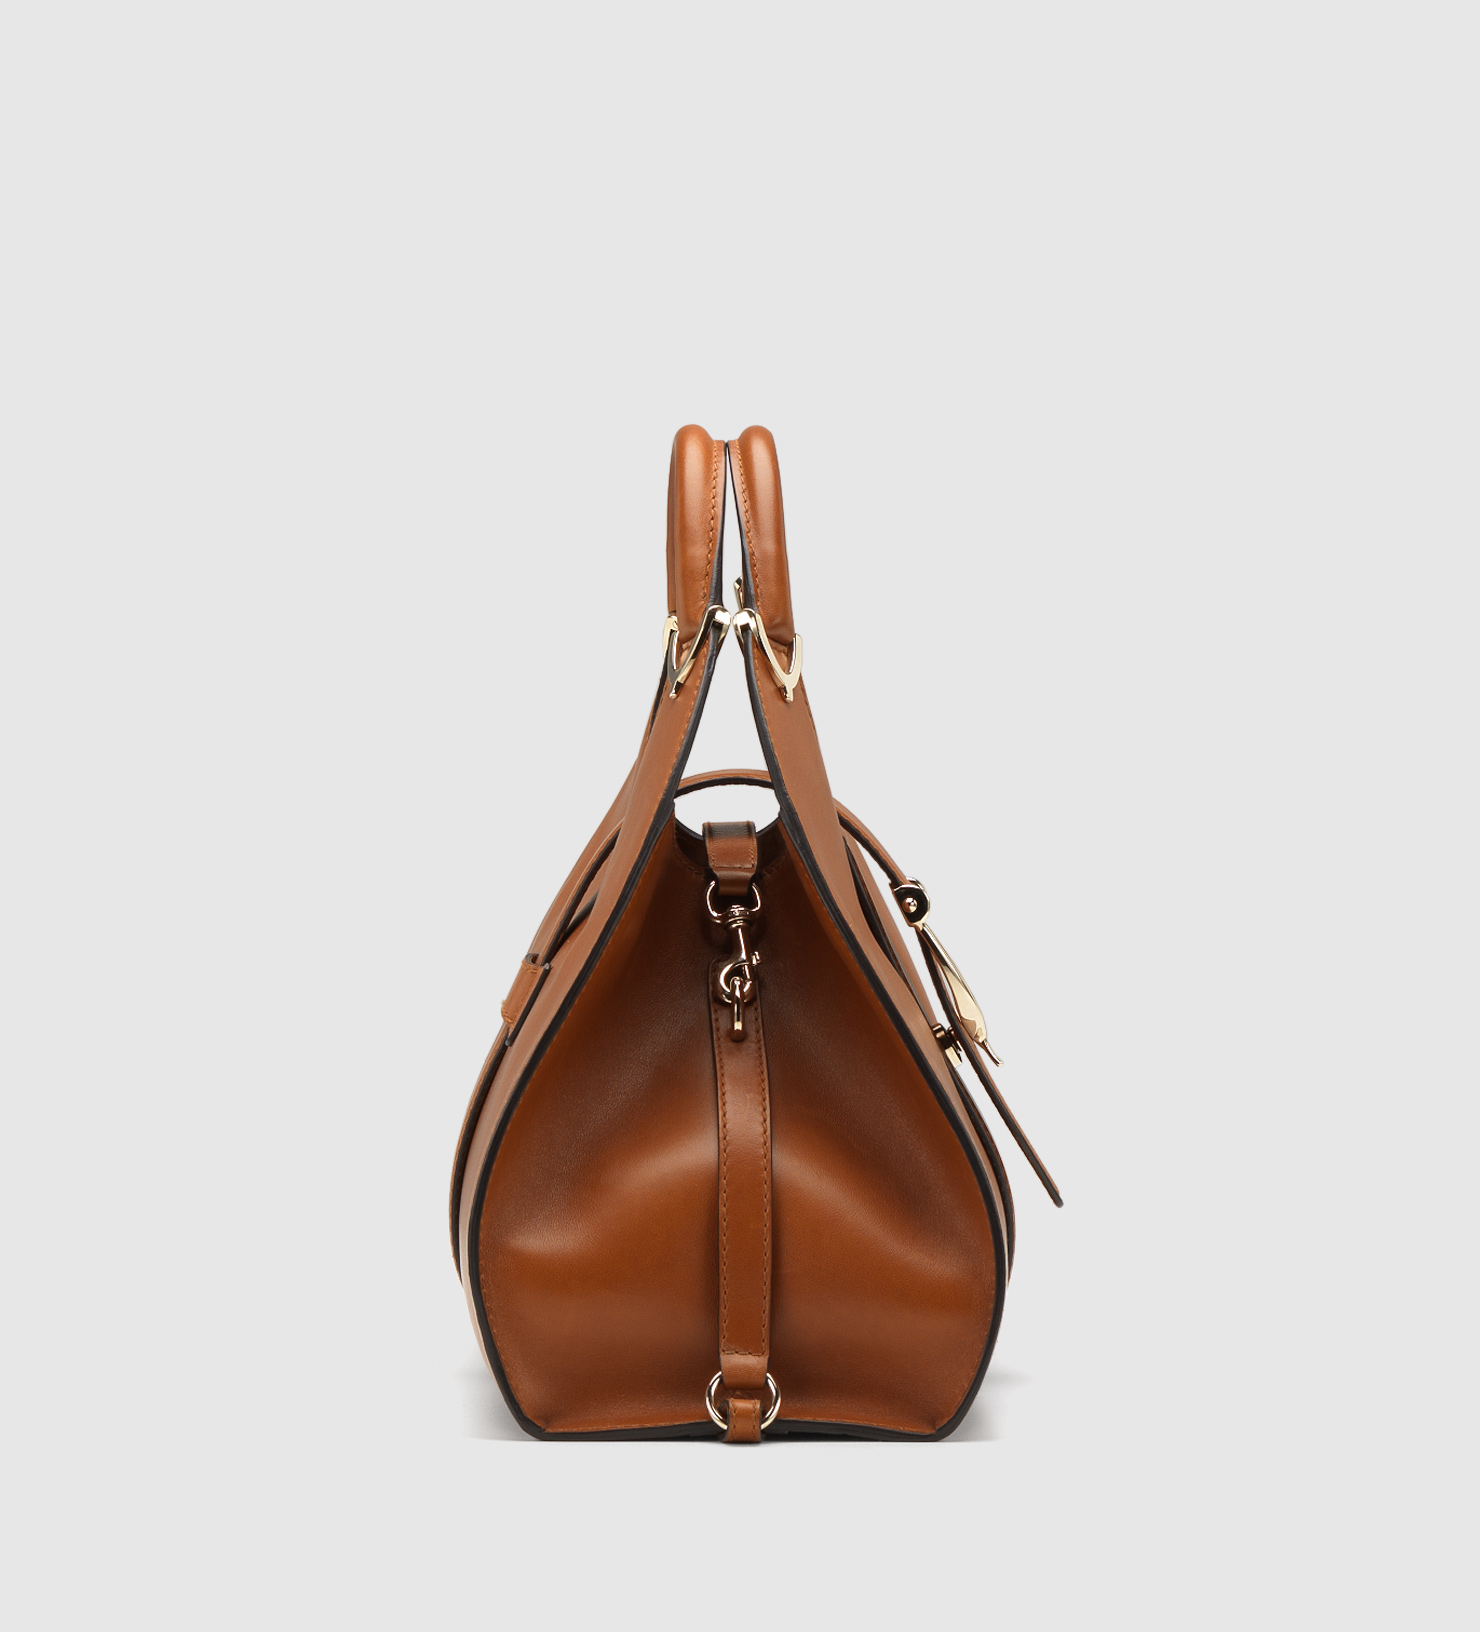 626f224f9 Gucci Stirrup Leather Shoulder Bag in Brown - Lyst